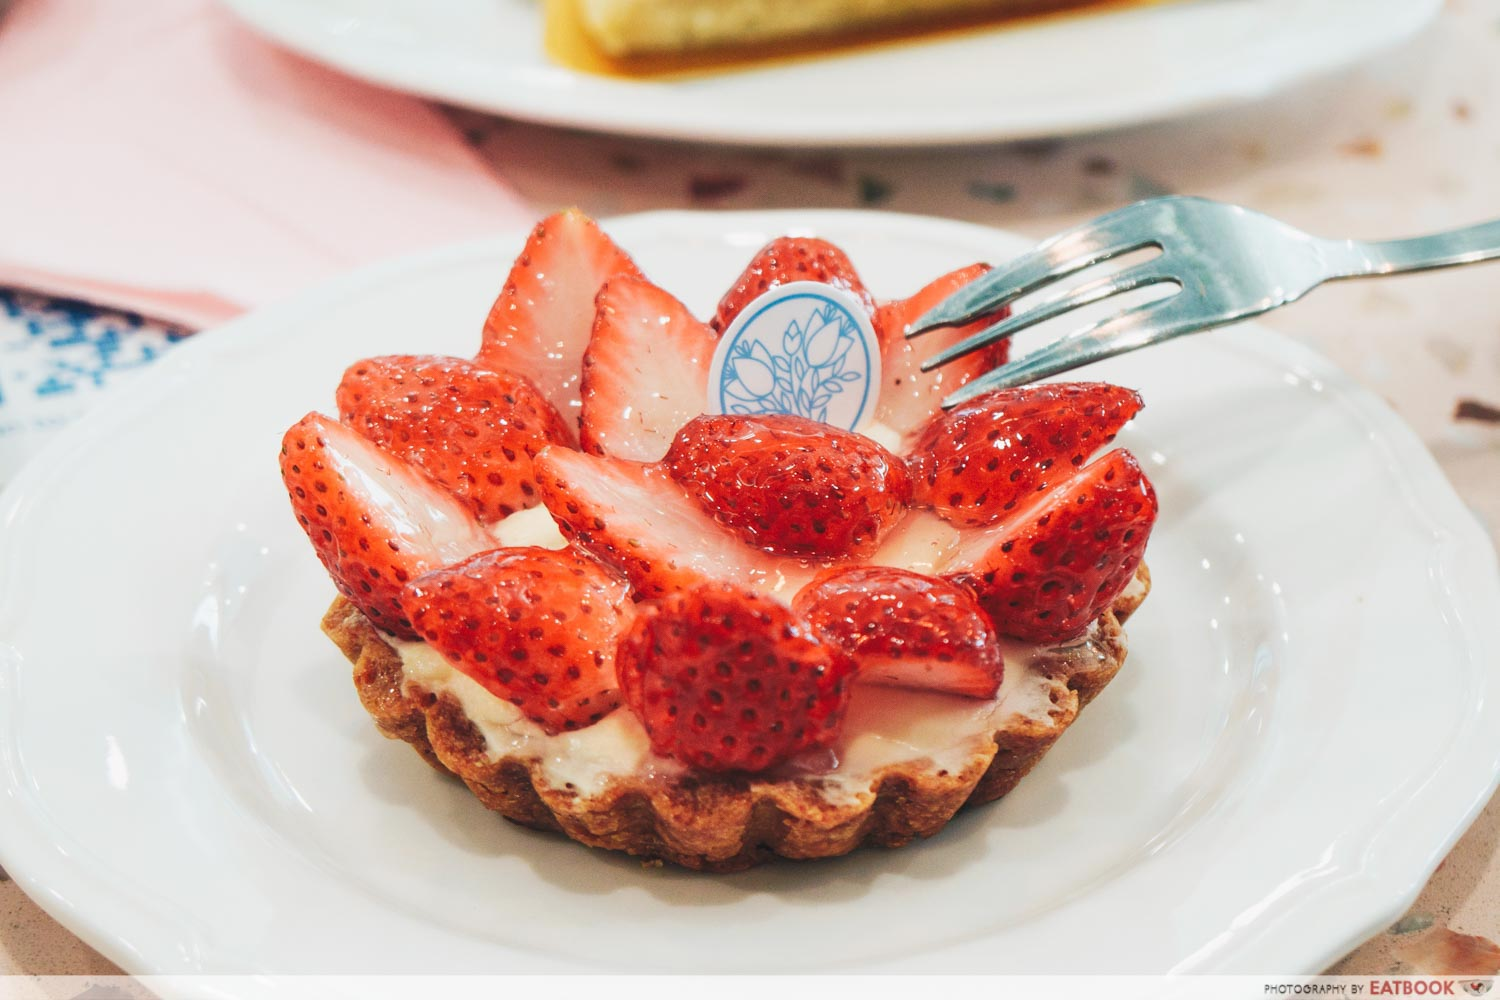 Flor Patisserie - yuzu strawberry tart